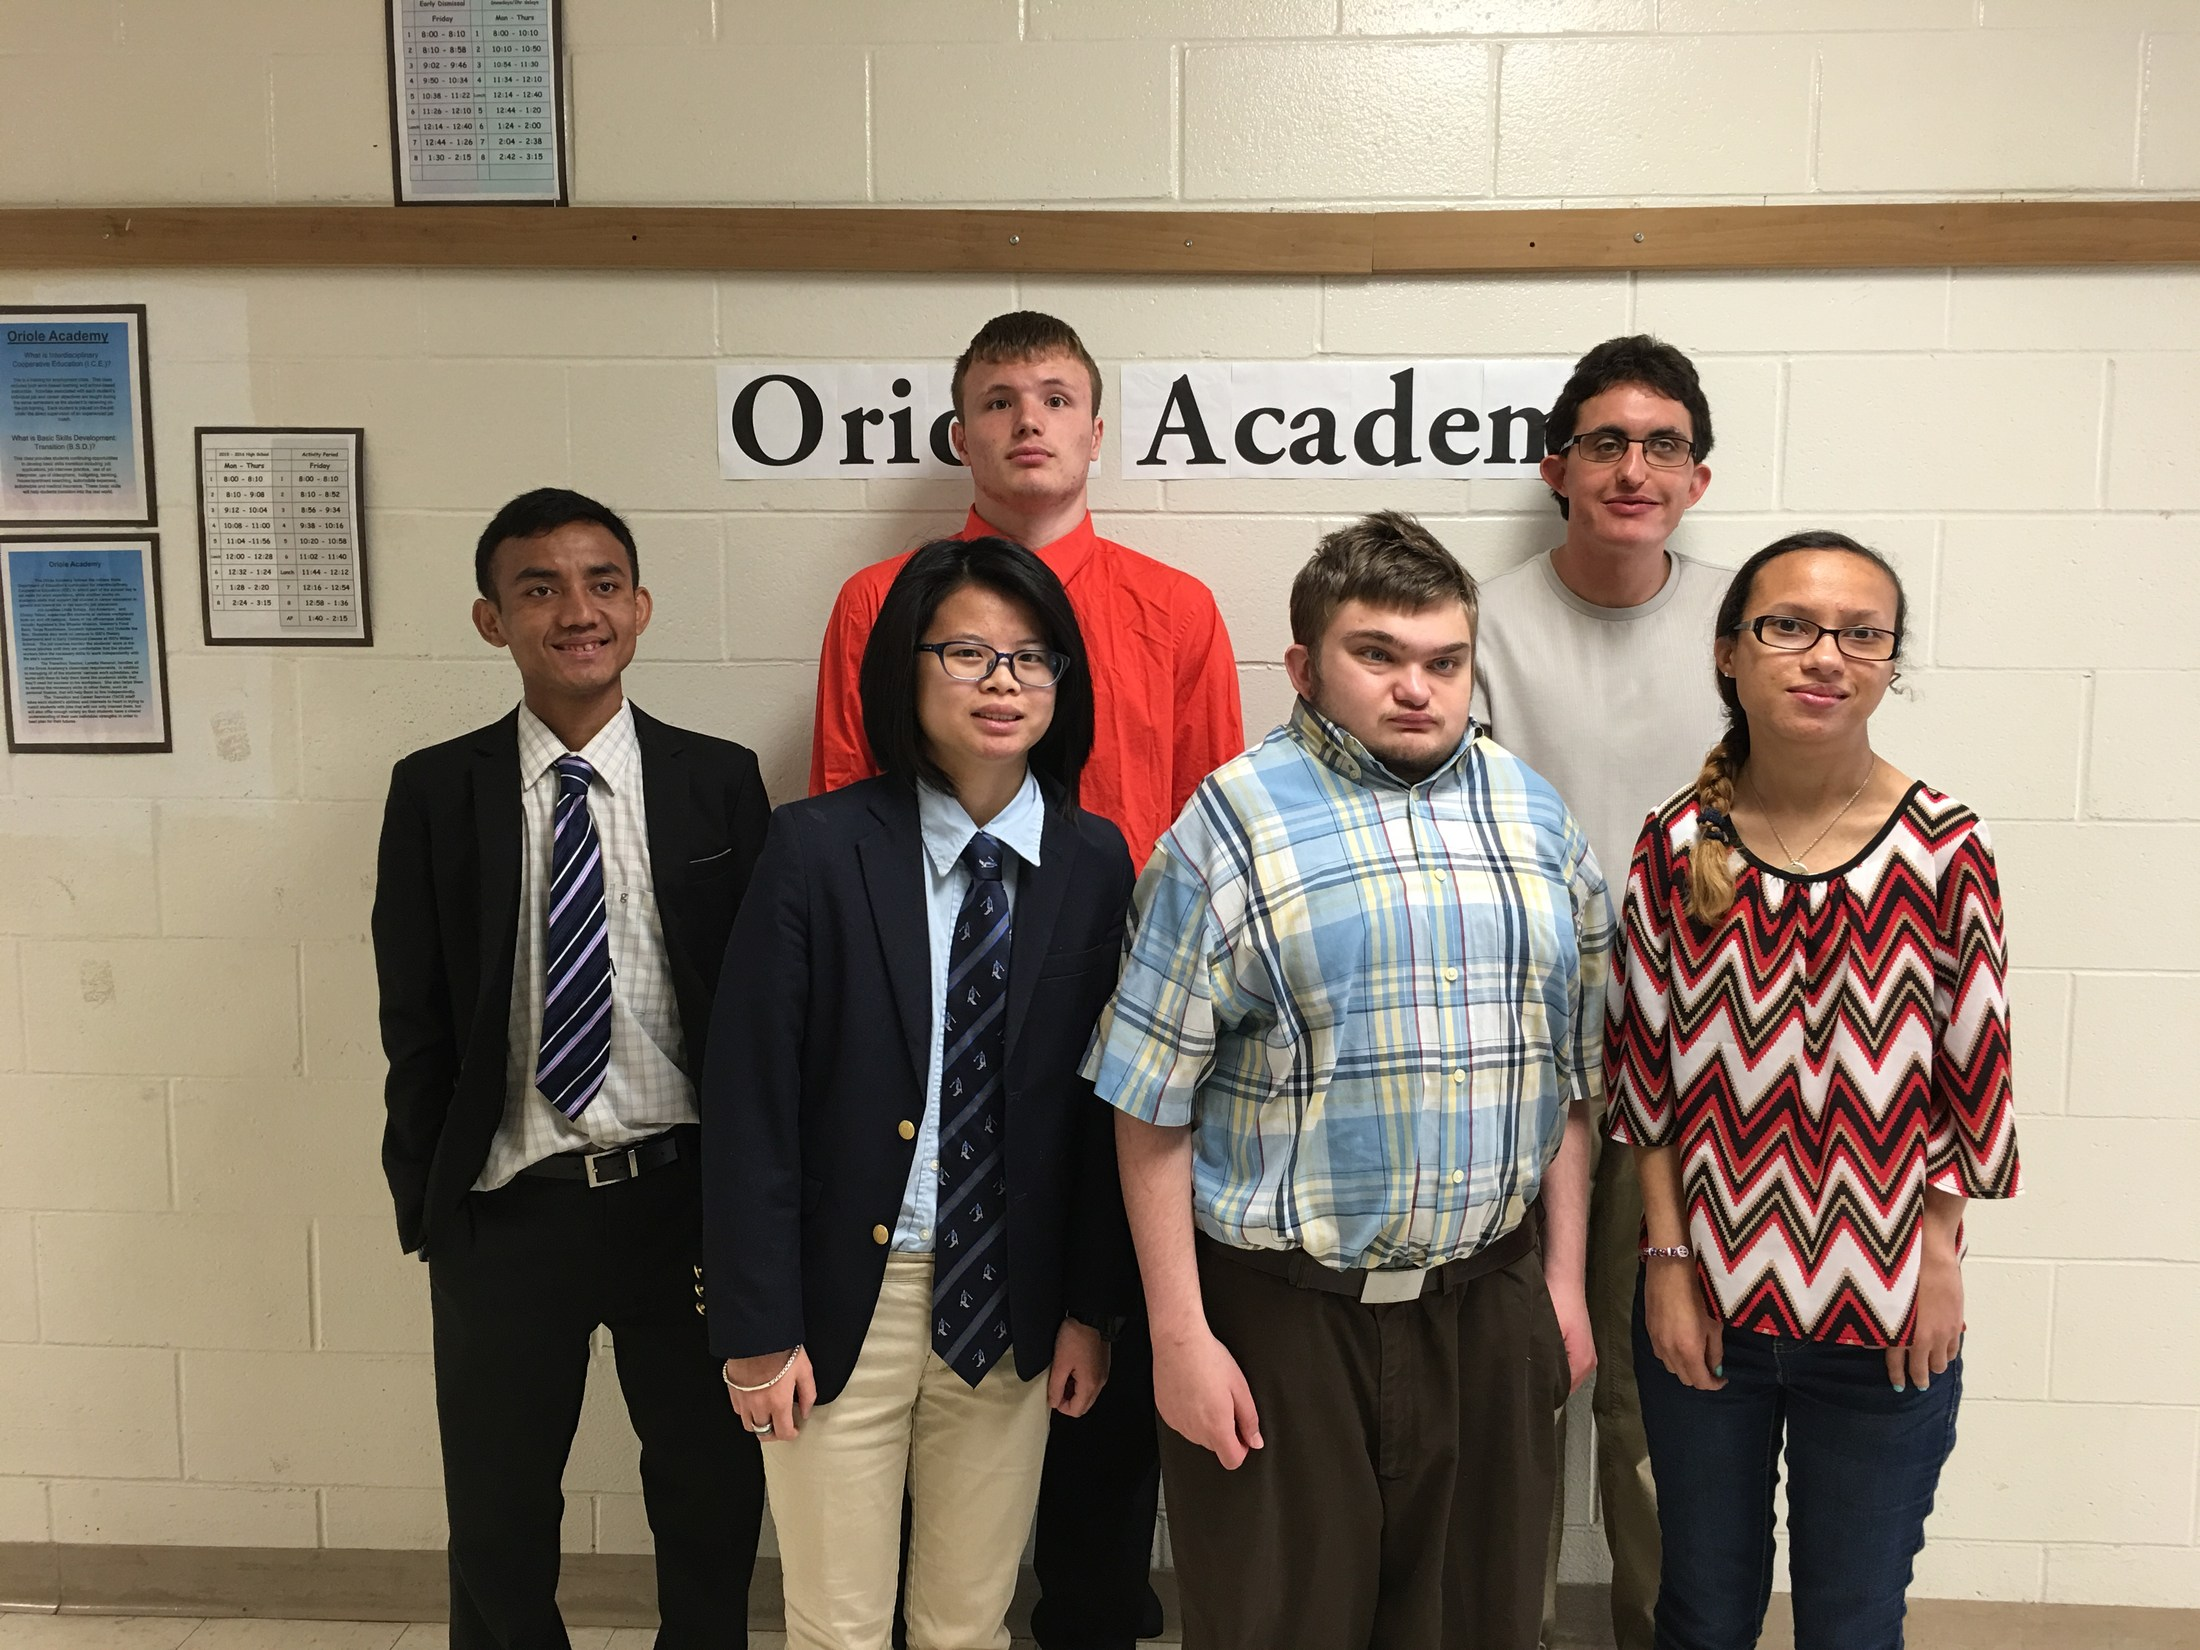 Group of oriole academy students